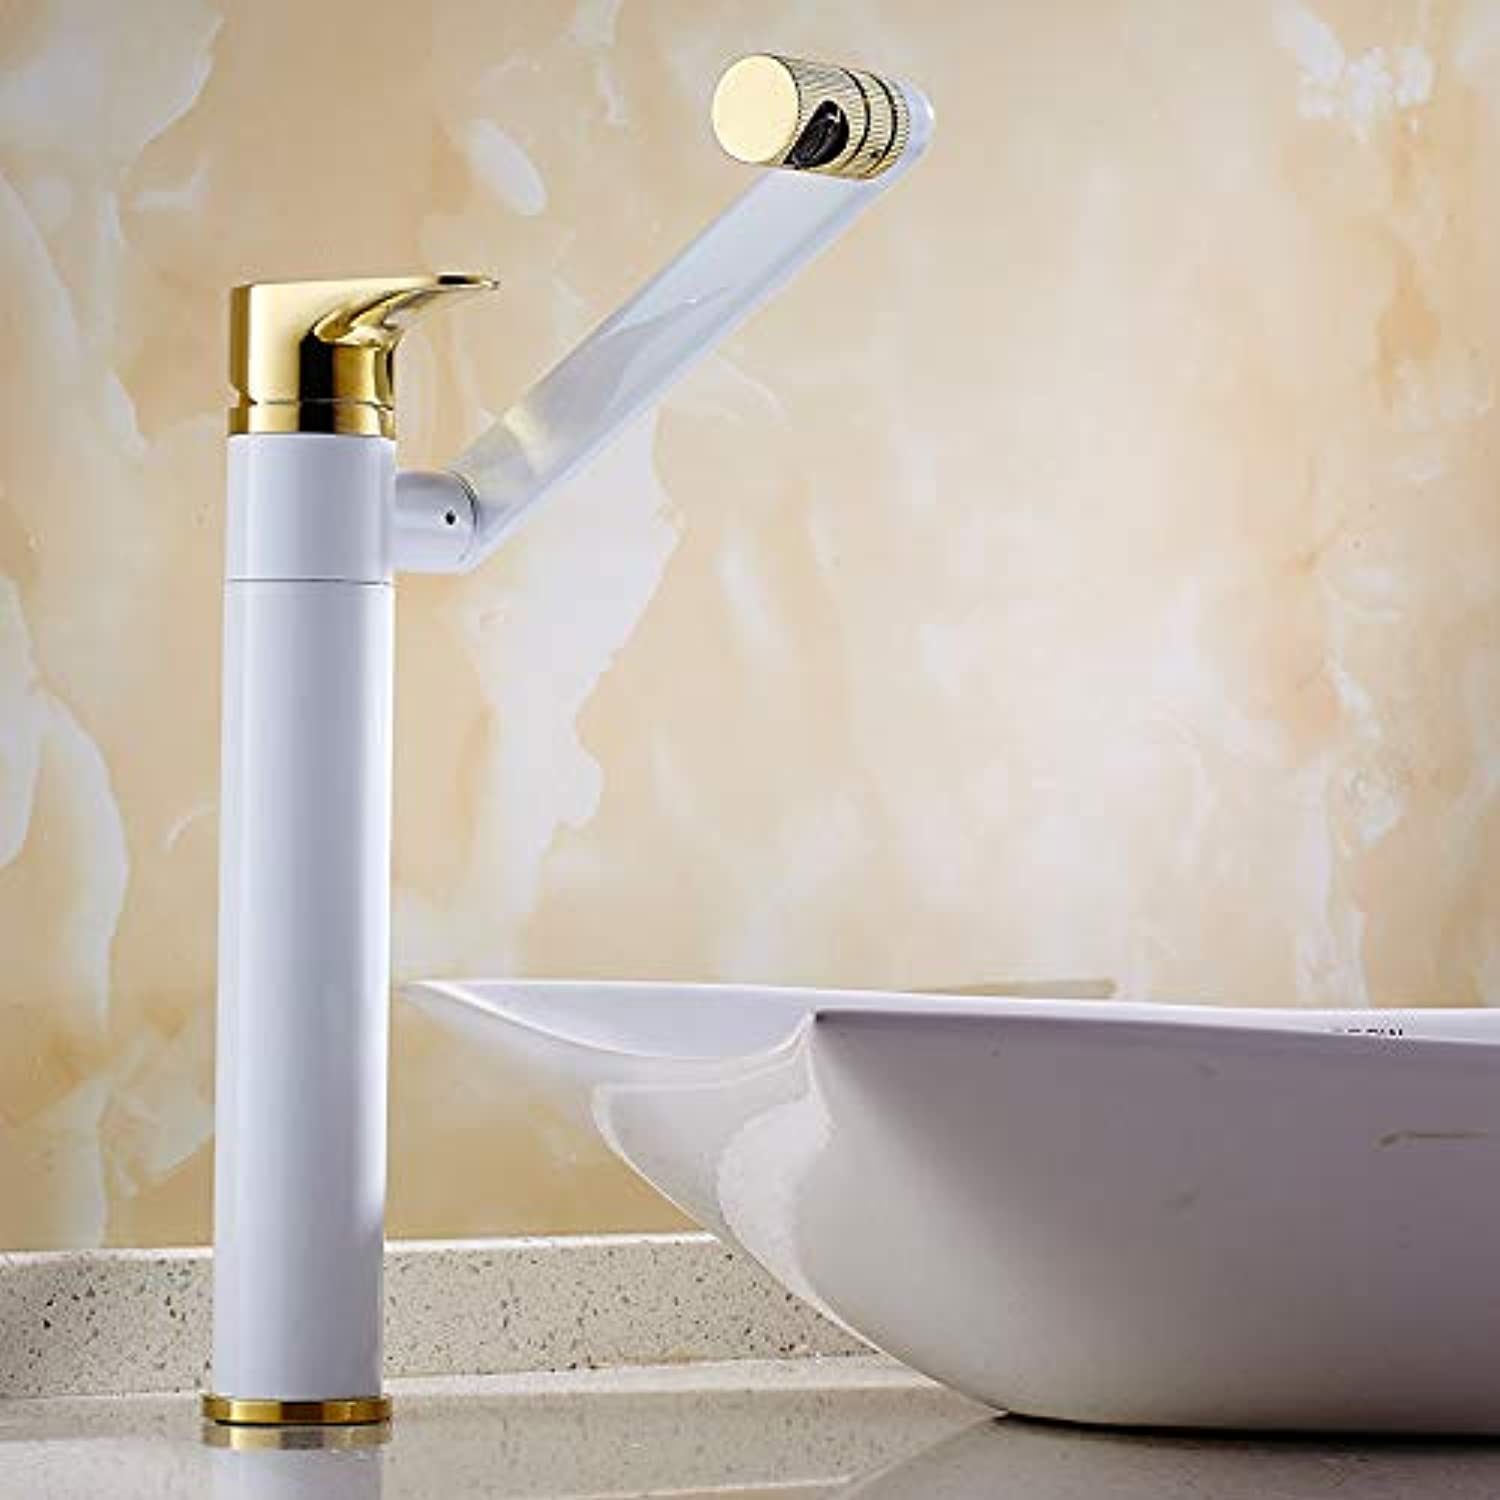 Tap Single Handle Bathroom Sink Faucet,Wash Basin Faucet _ All Copper Hot And Cold Basin Faucet Can Be 360 ??Degree gold Antique Wash Basin Basin Faucet, White Plus gold Plus High Money Lucky Cat